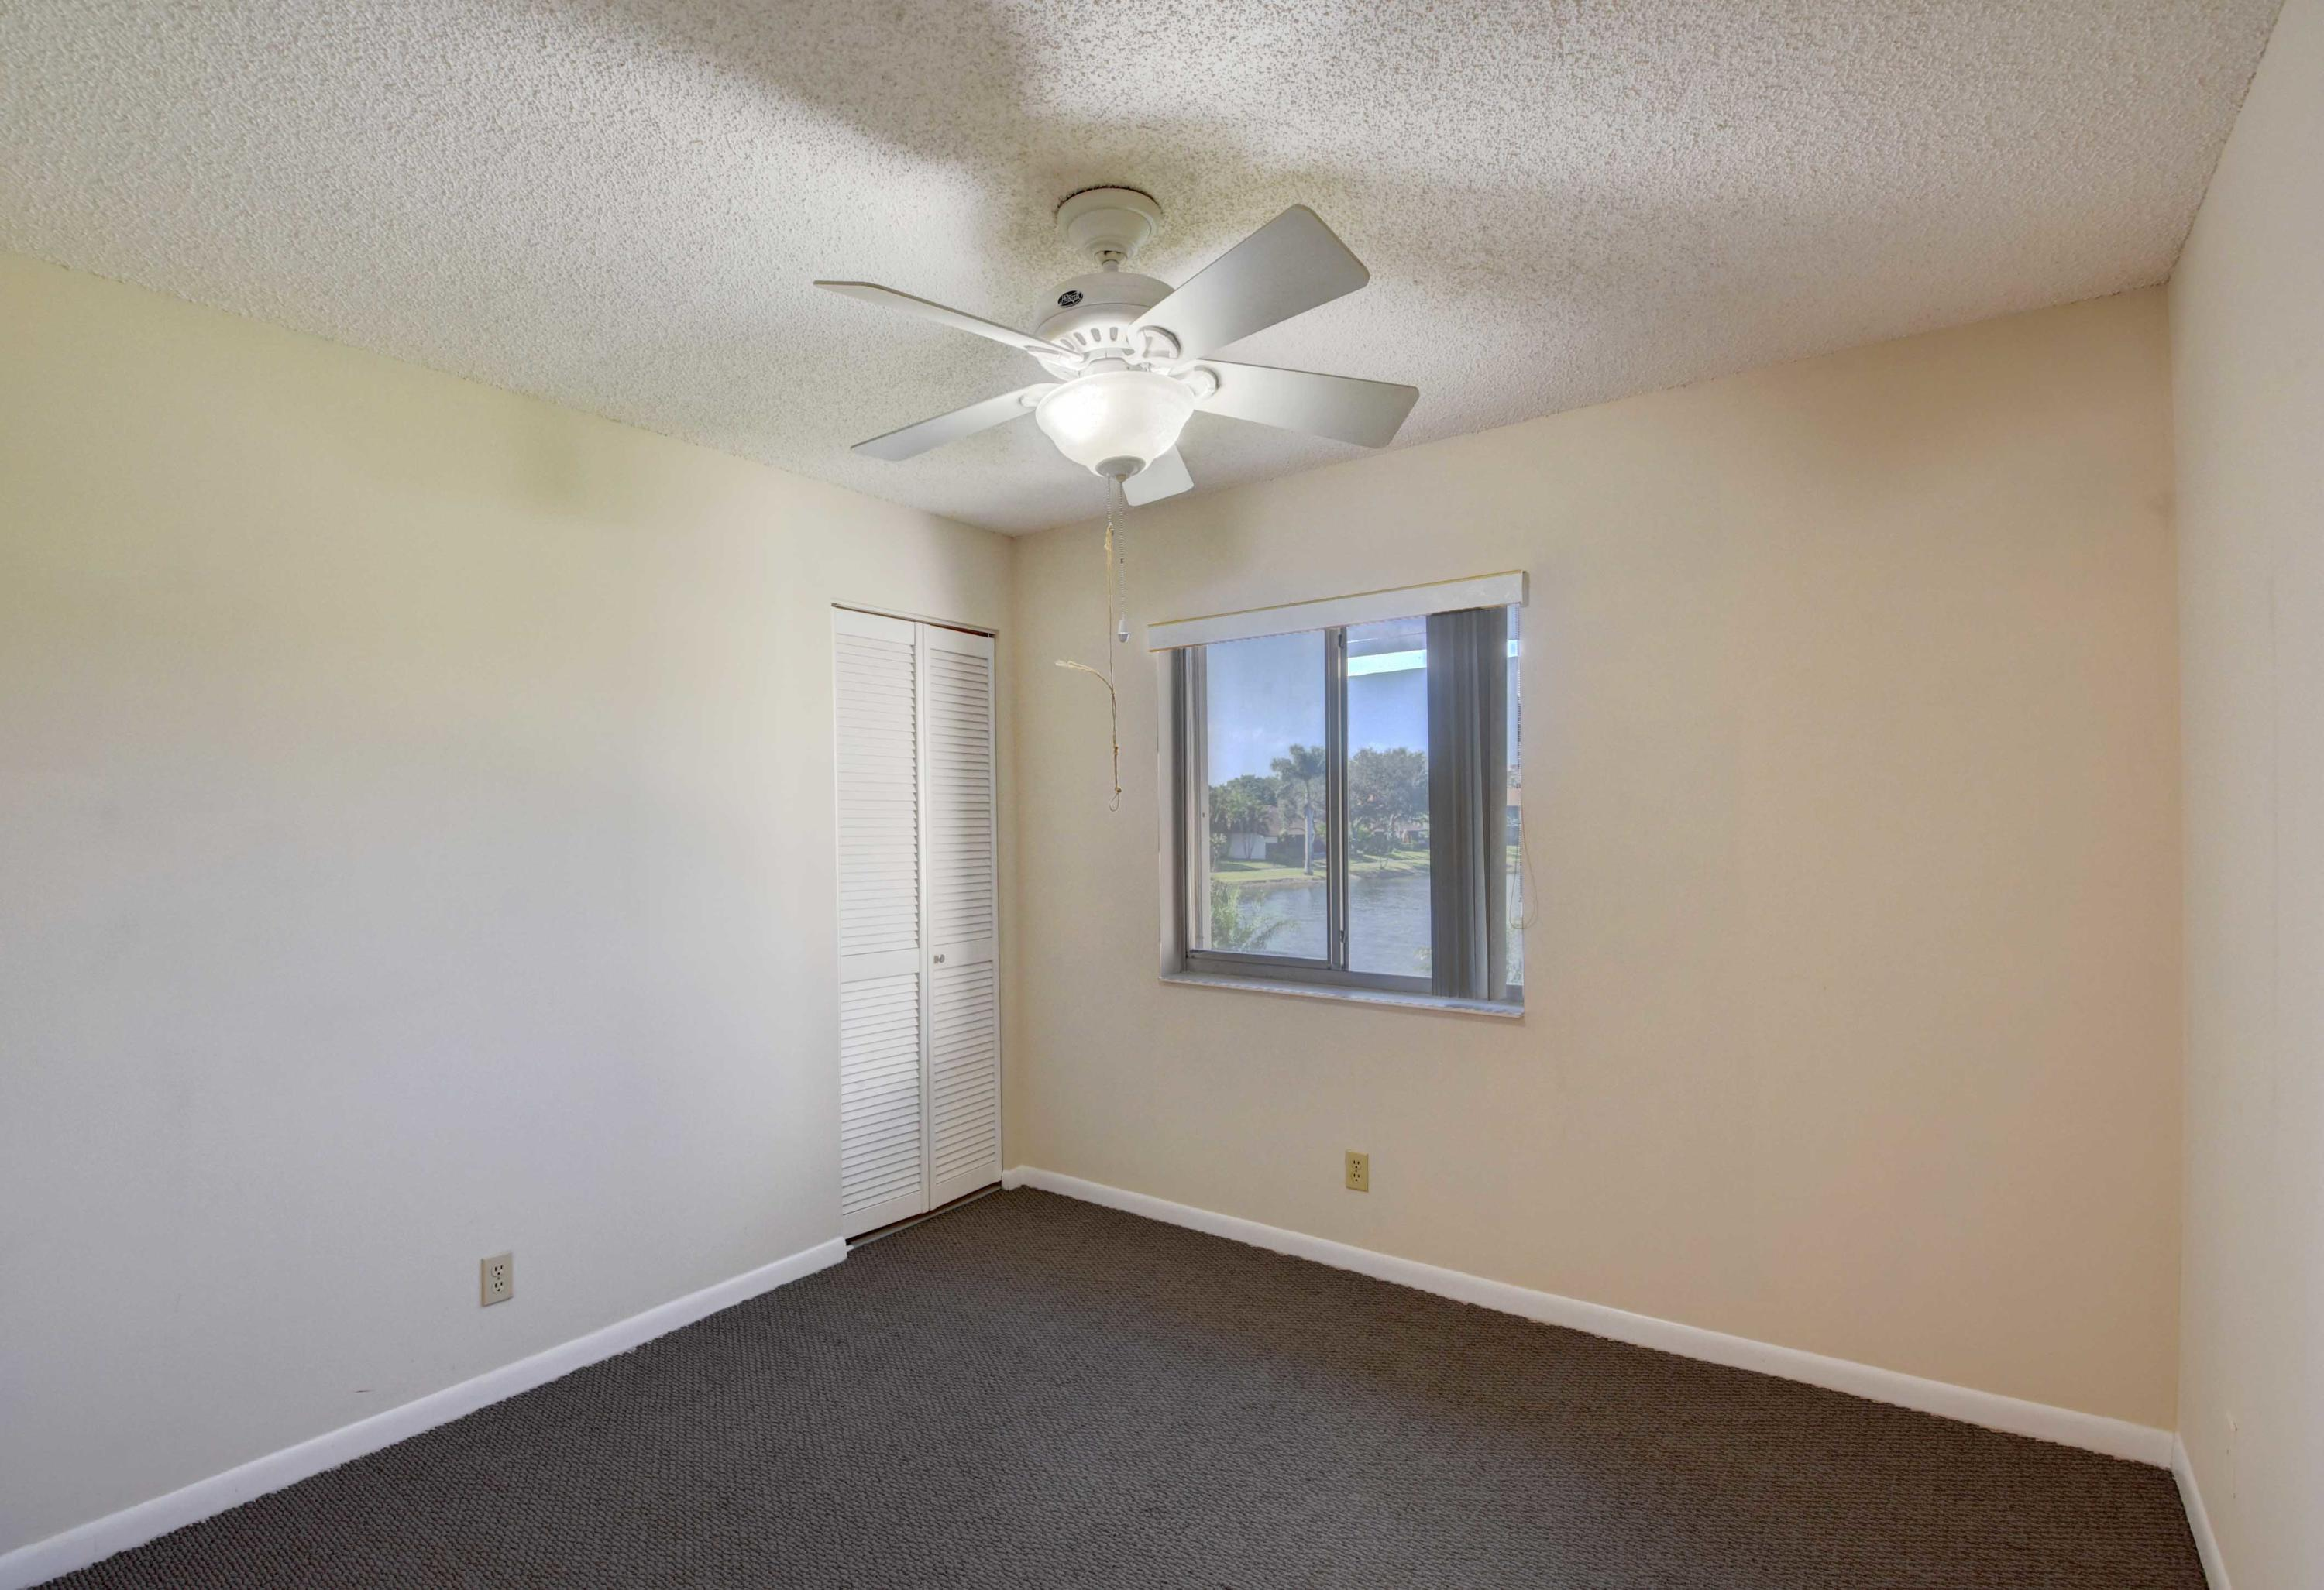 4850 Sable Pine B2 Circle #B2 - 33417 - FL - West Palm Beach